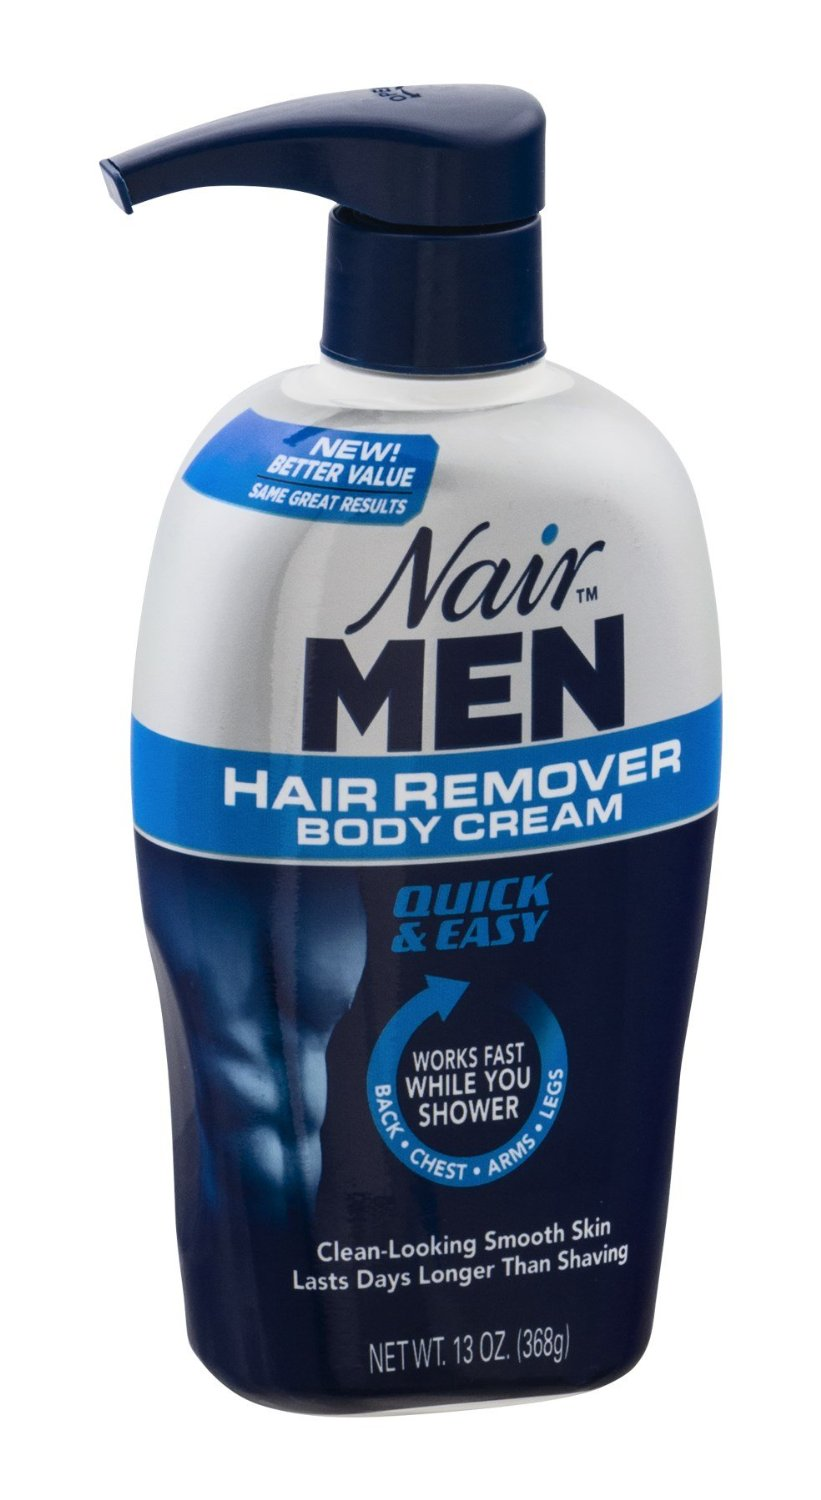 medium resolution of nair men hair remover body cream